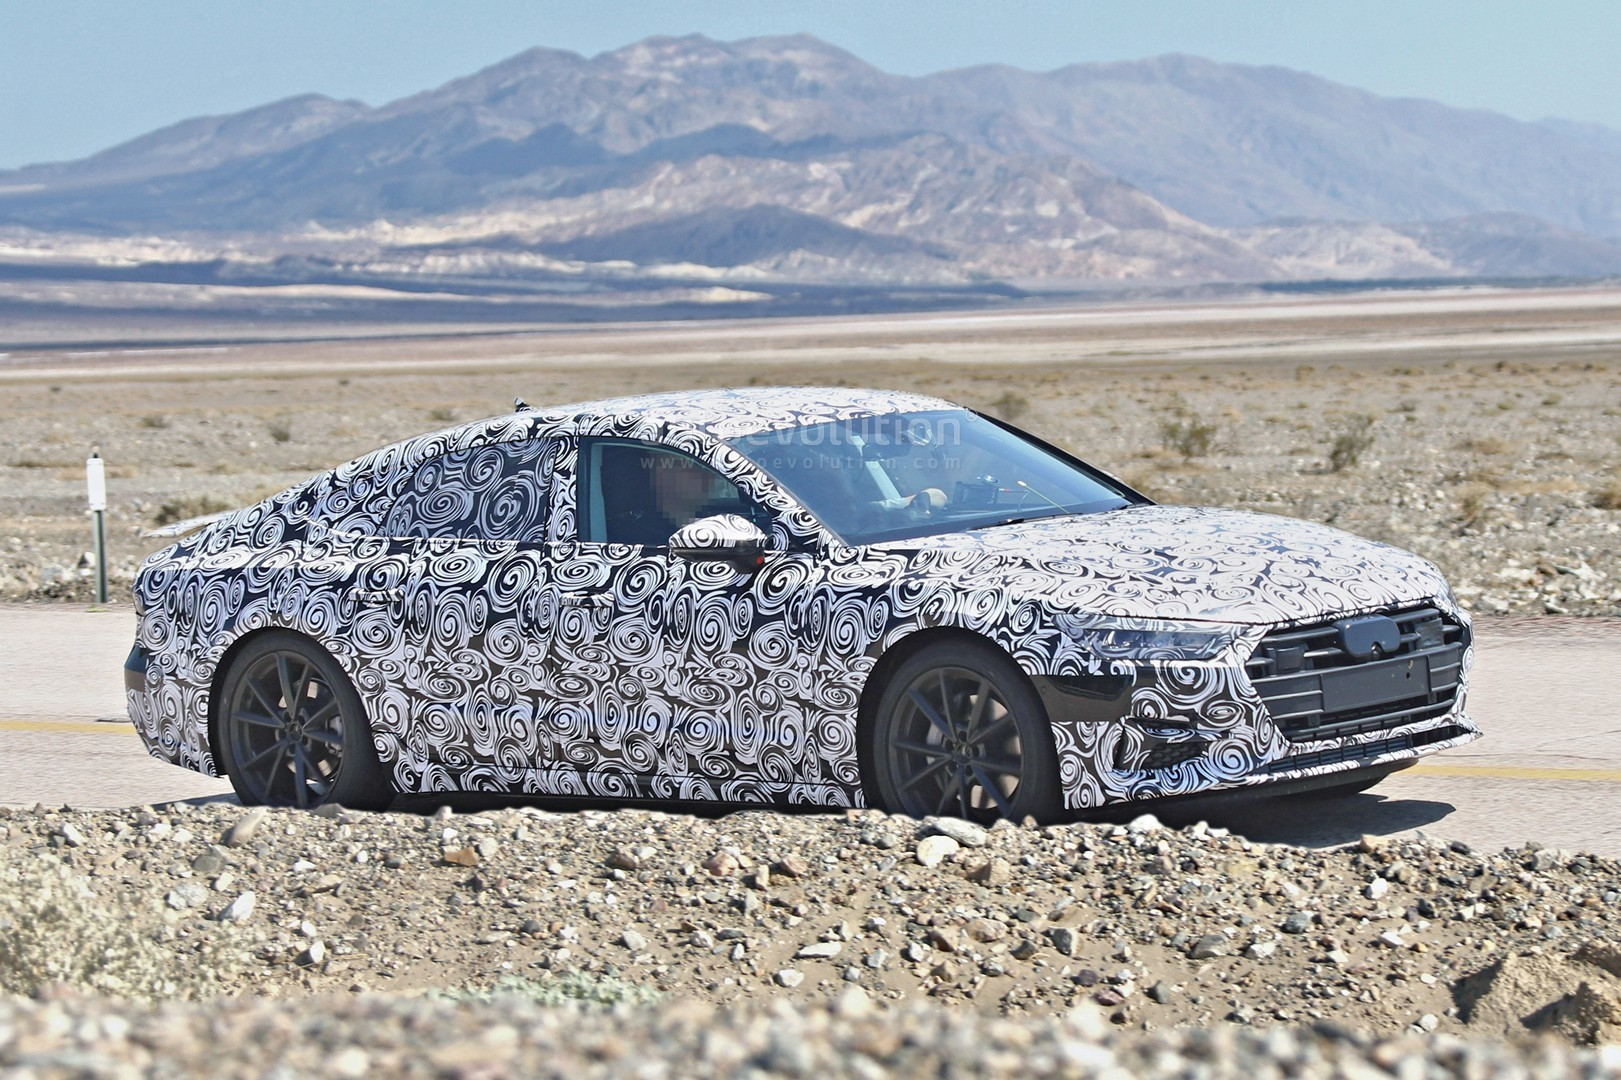 2018 audi electric car. interesting electric 2018 audi a7 detailed spy photos reveal it could be electric or  hydrogenpowered inside audi electric car m